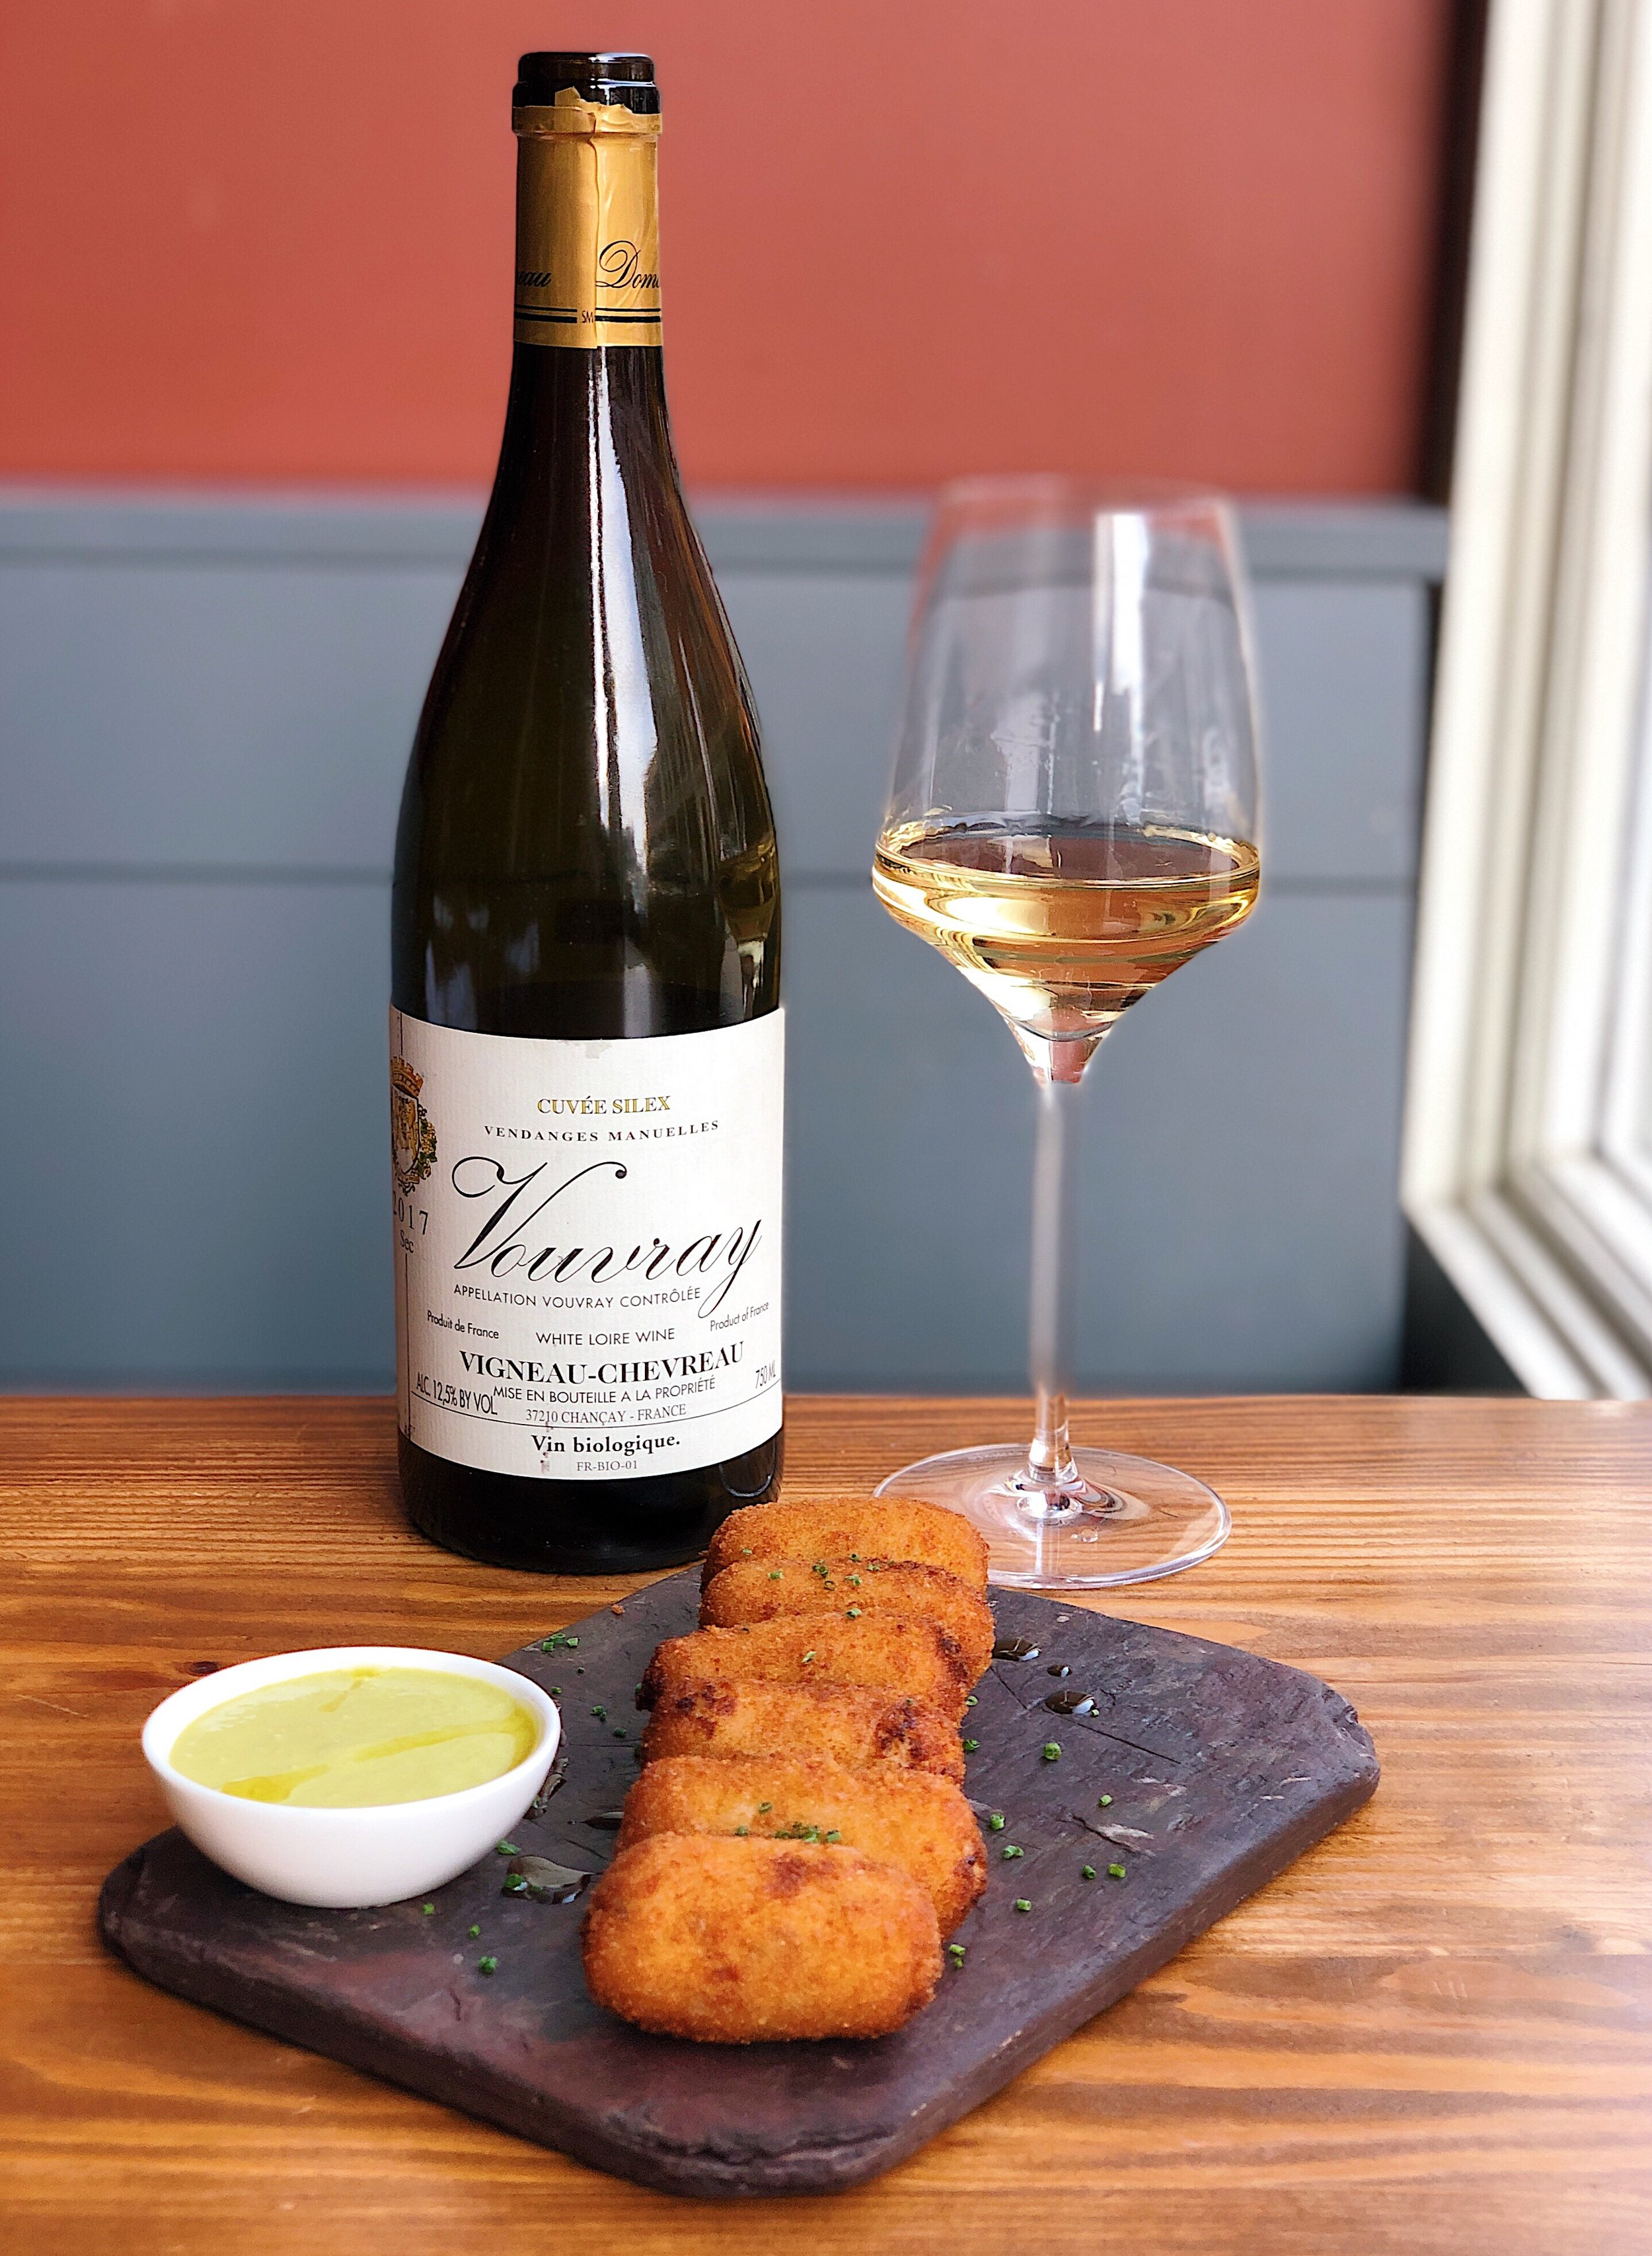 wine_wise_events_walk_portland_maine_France_white_loire_vouvray.jpg